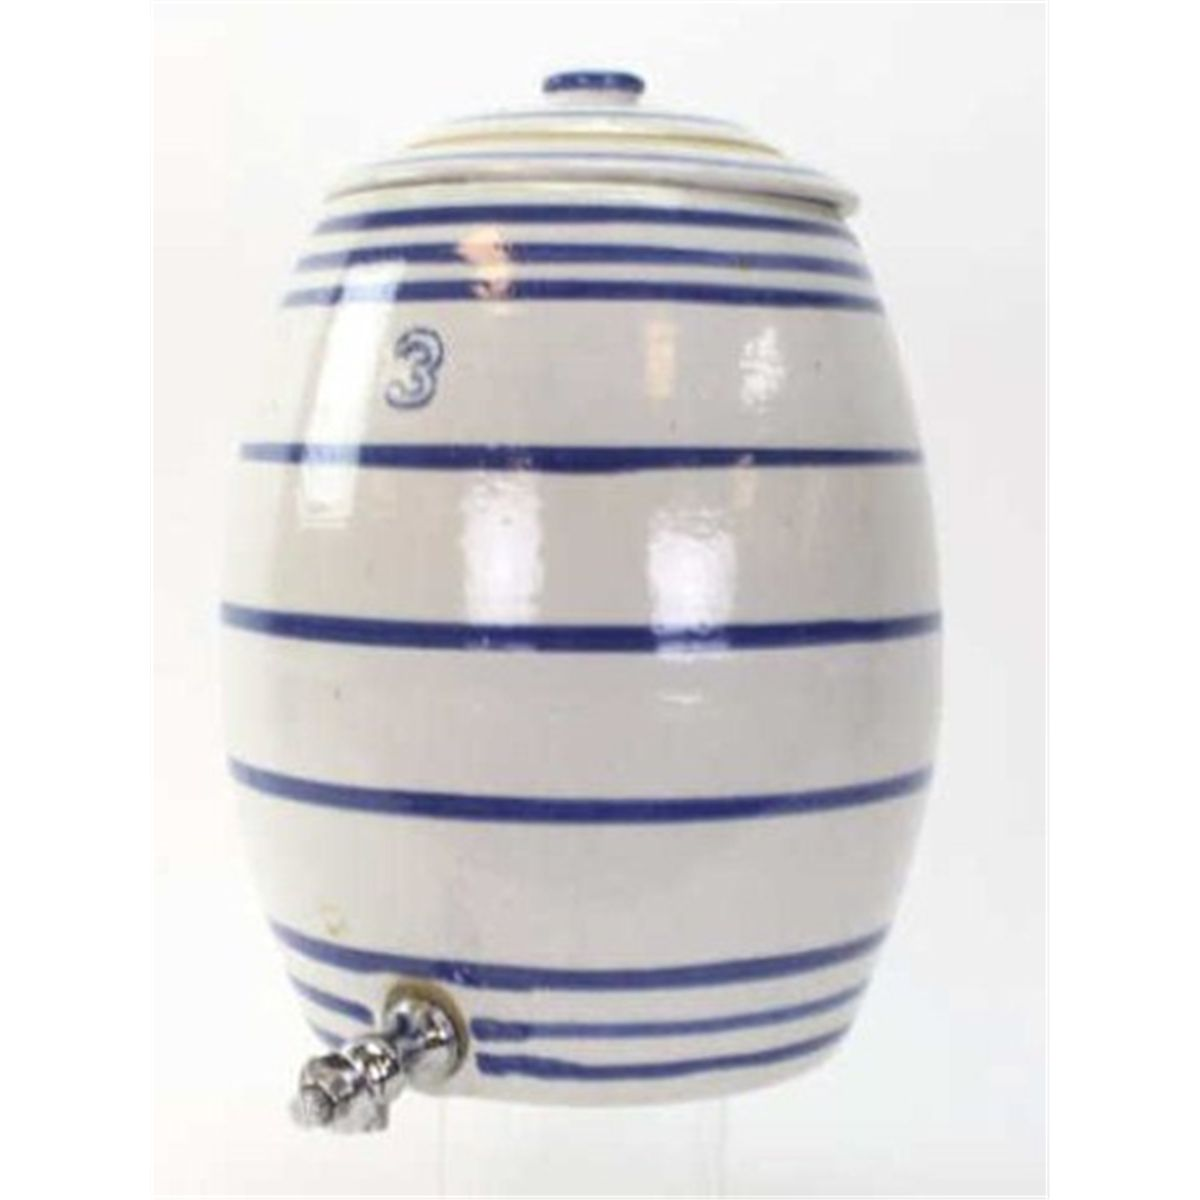 Antique Water Cooler Crock Best 2000 Antique Decor Ideas